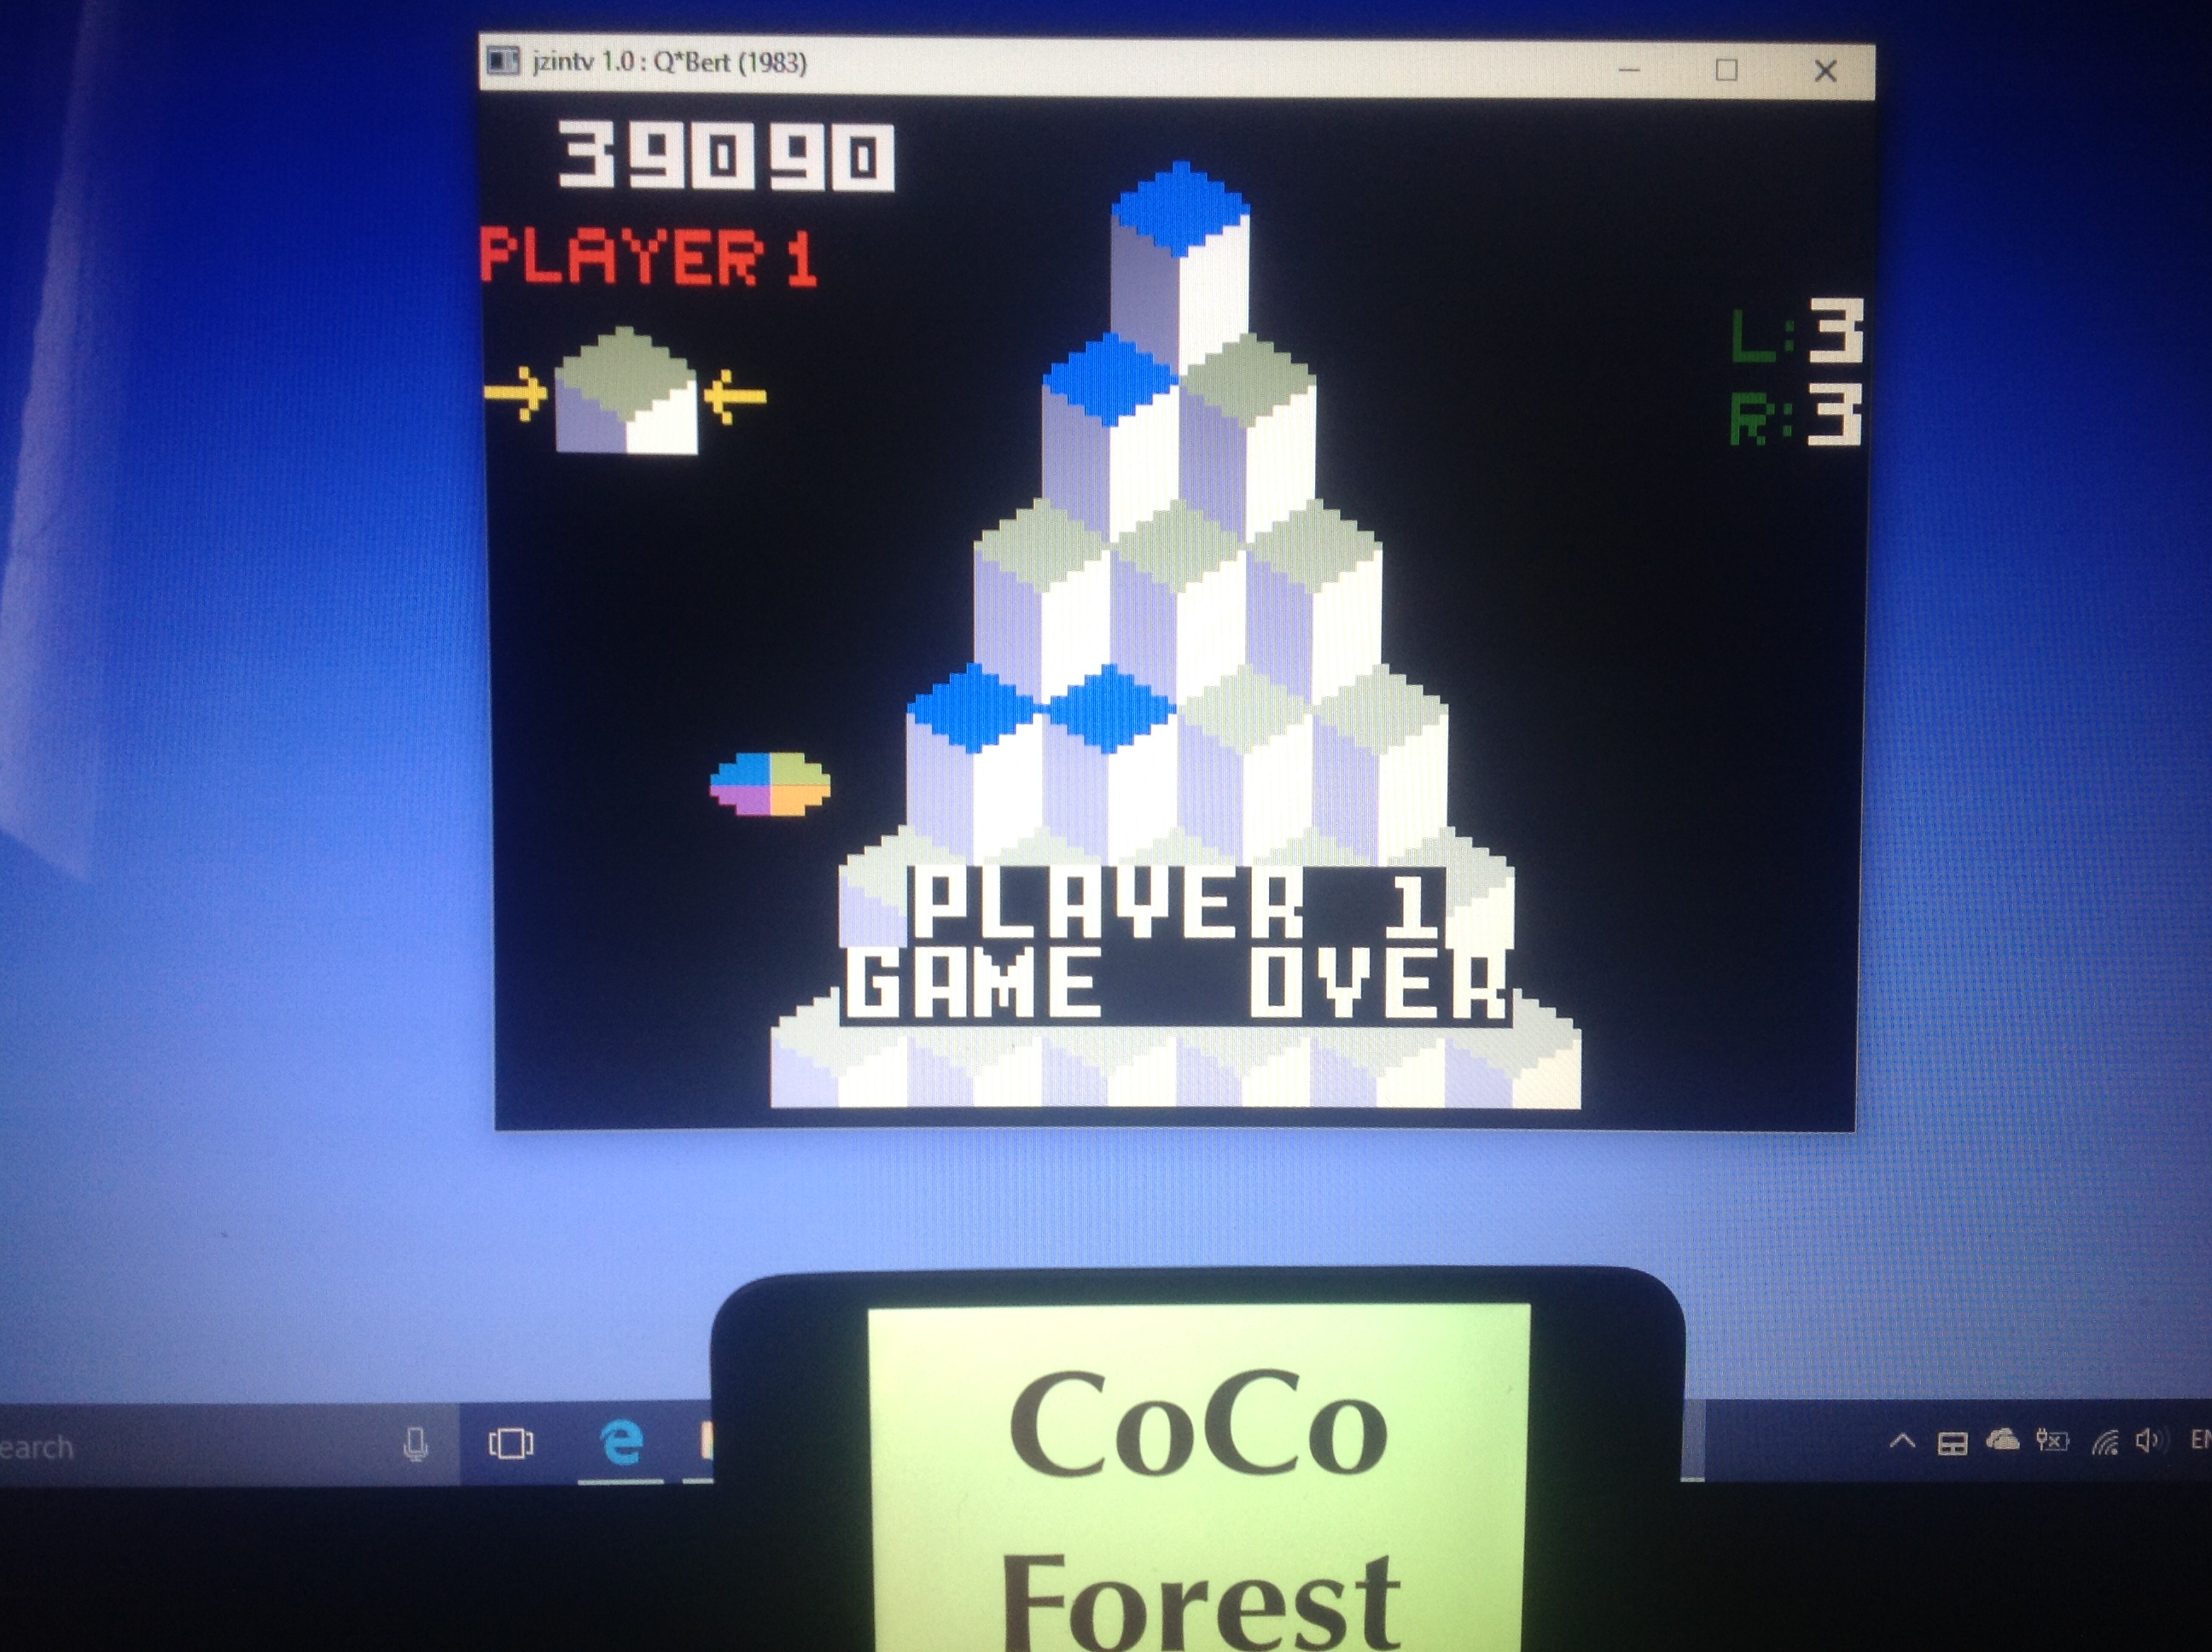 CoCoForest: Q*Bert (Intellivision Emulated) 39,090 points on 2018-01-23 08:35:32